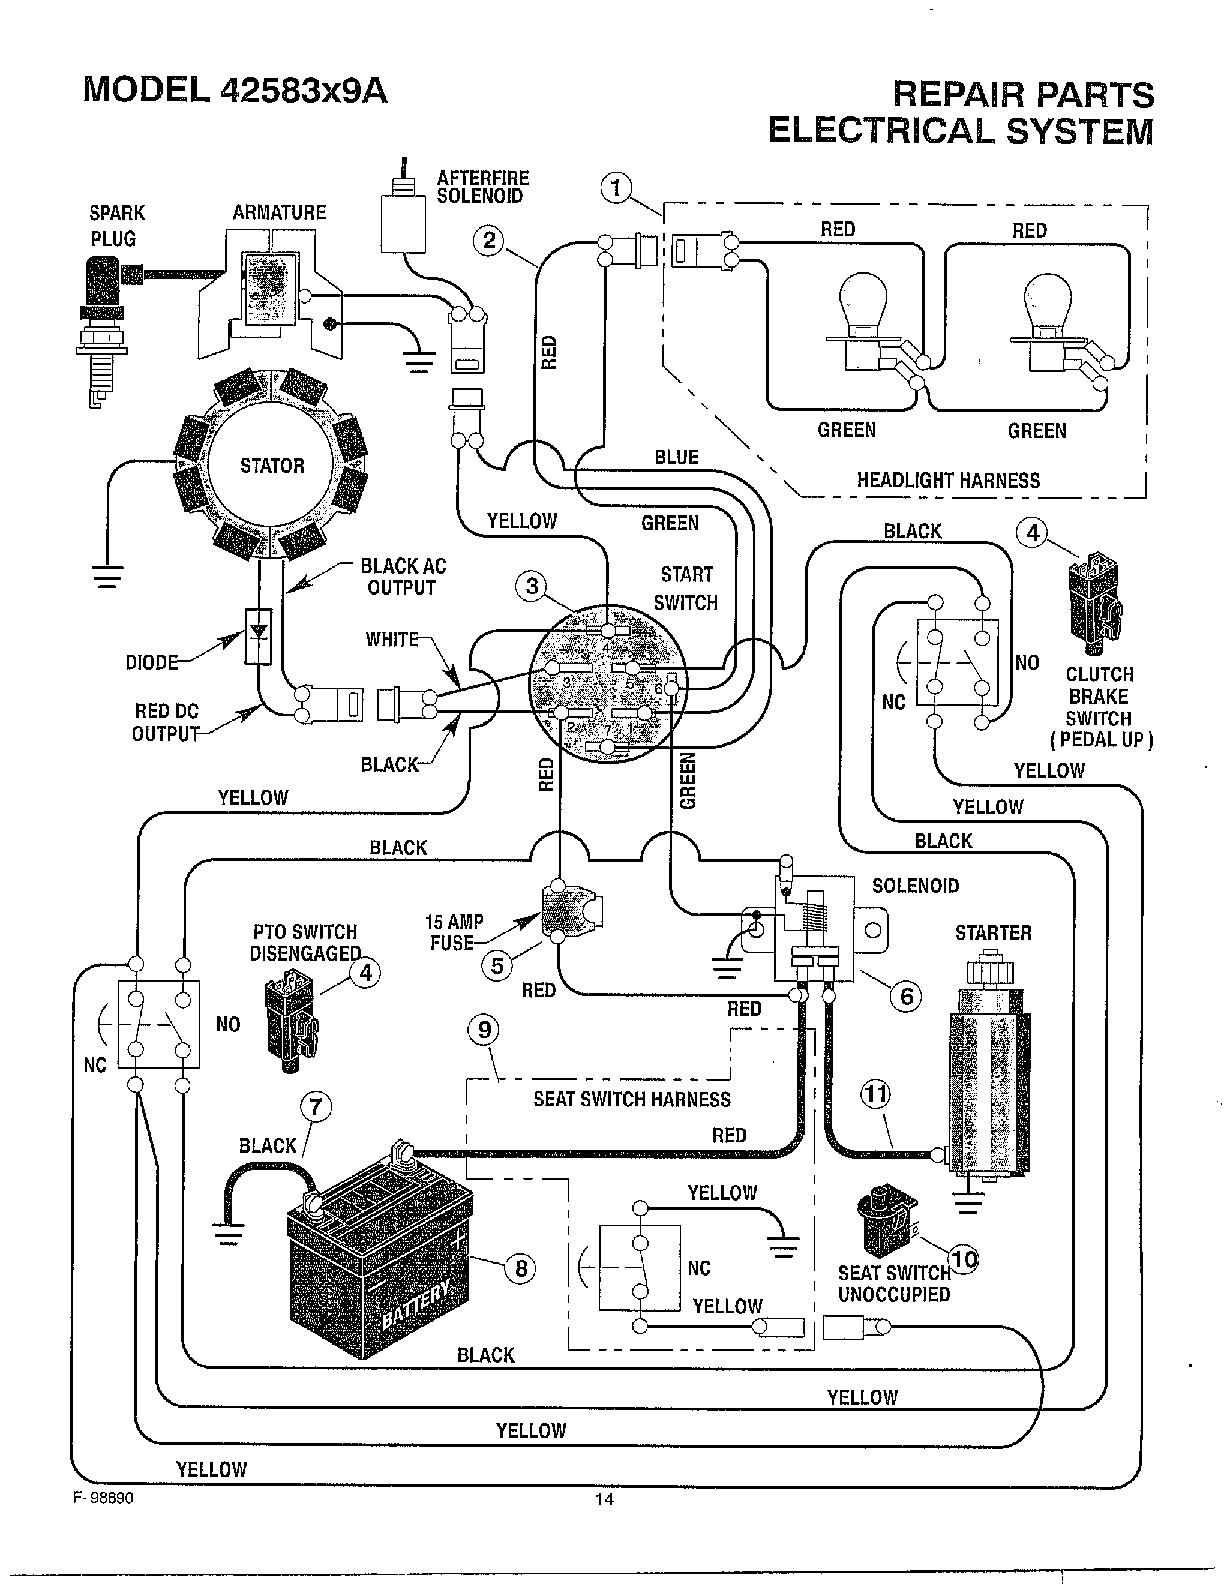 hight resolution of briggs and stratton key switch wiring diagram free picture experts rh evilcloud co uk briggs and